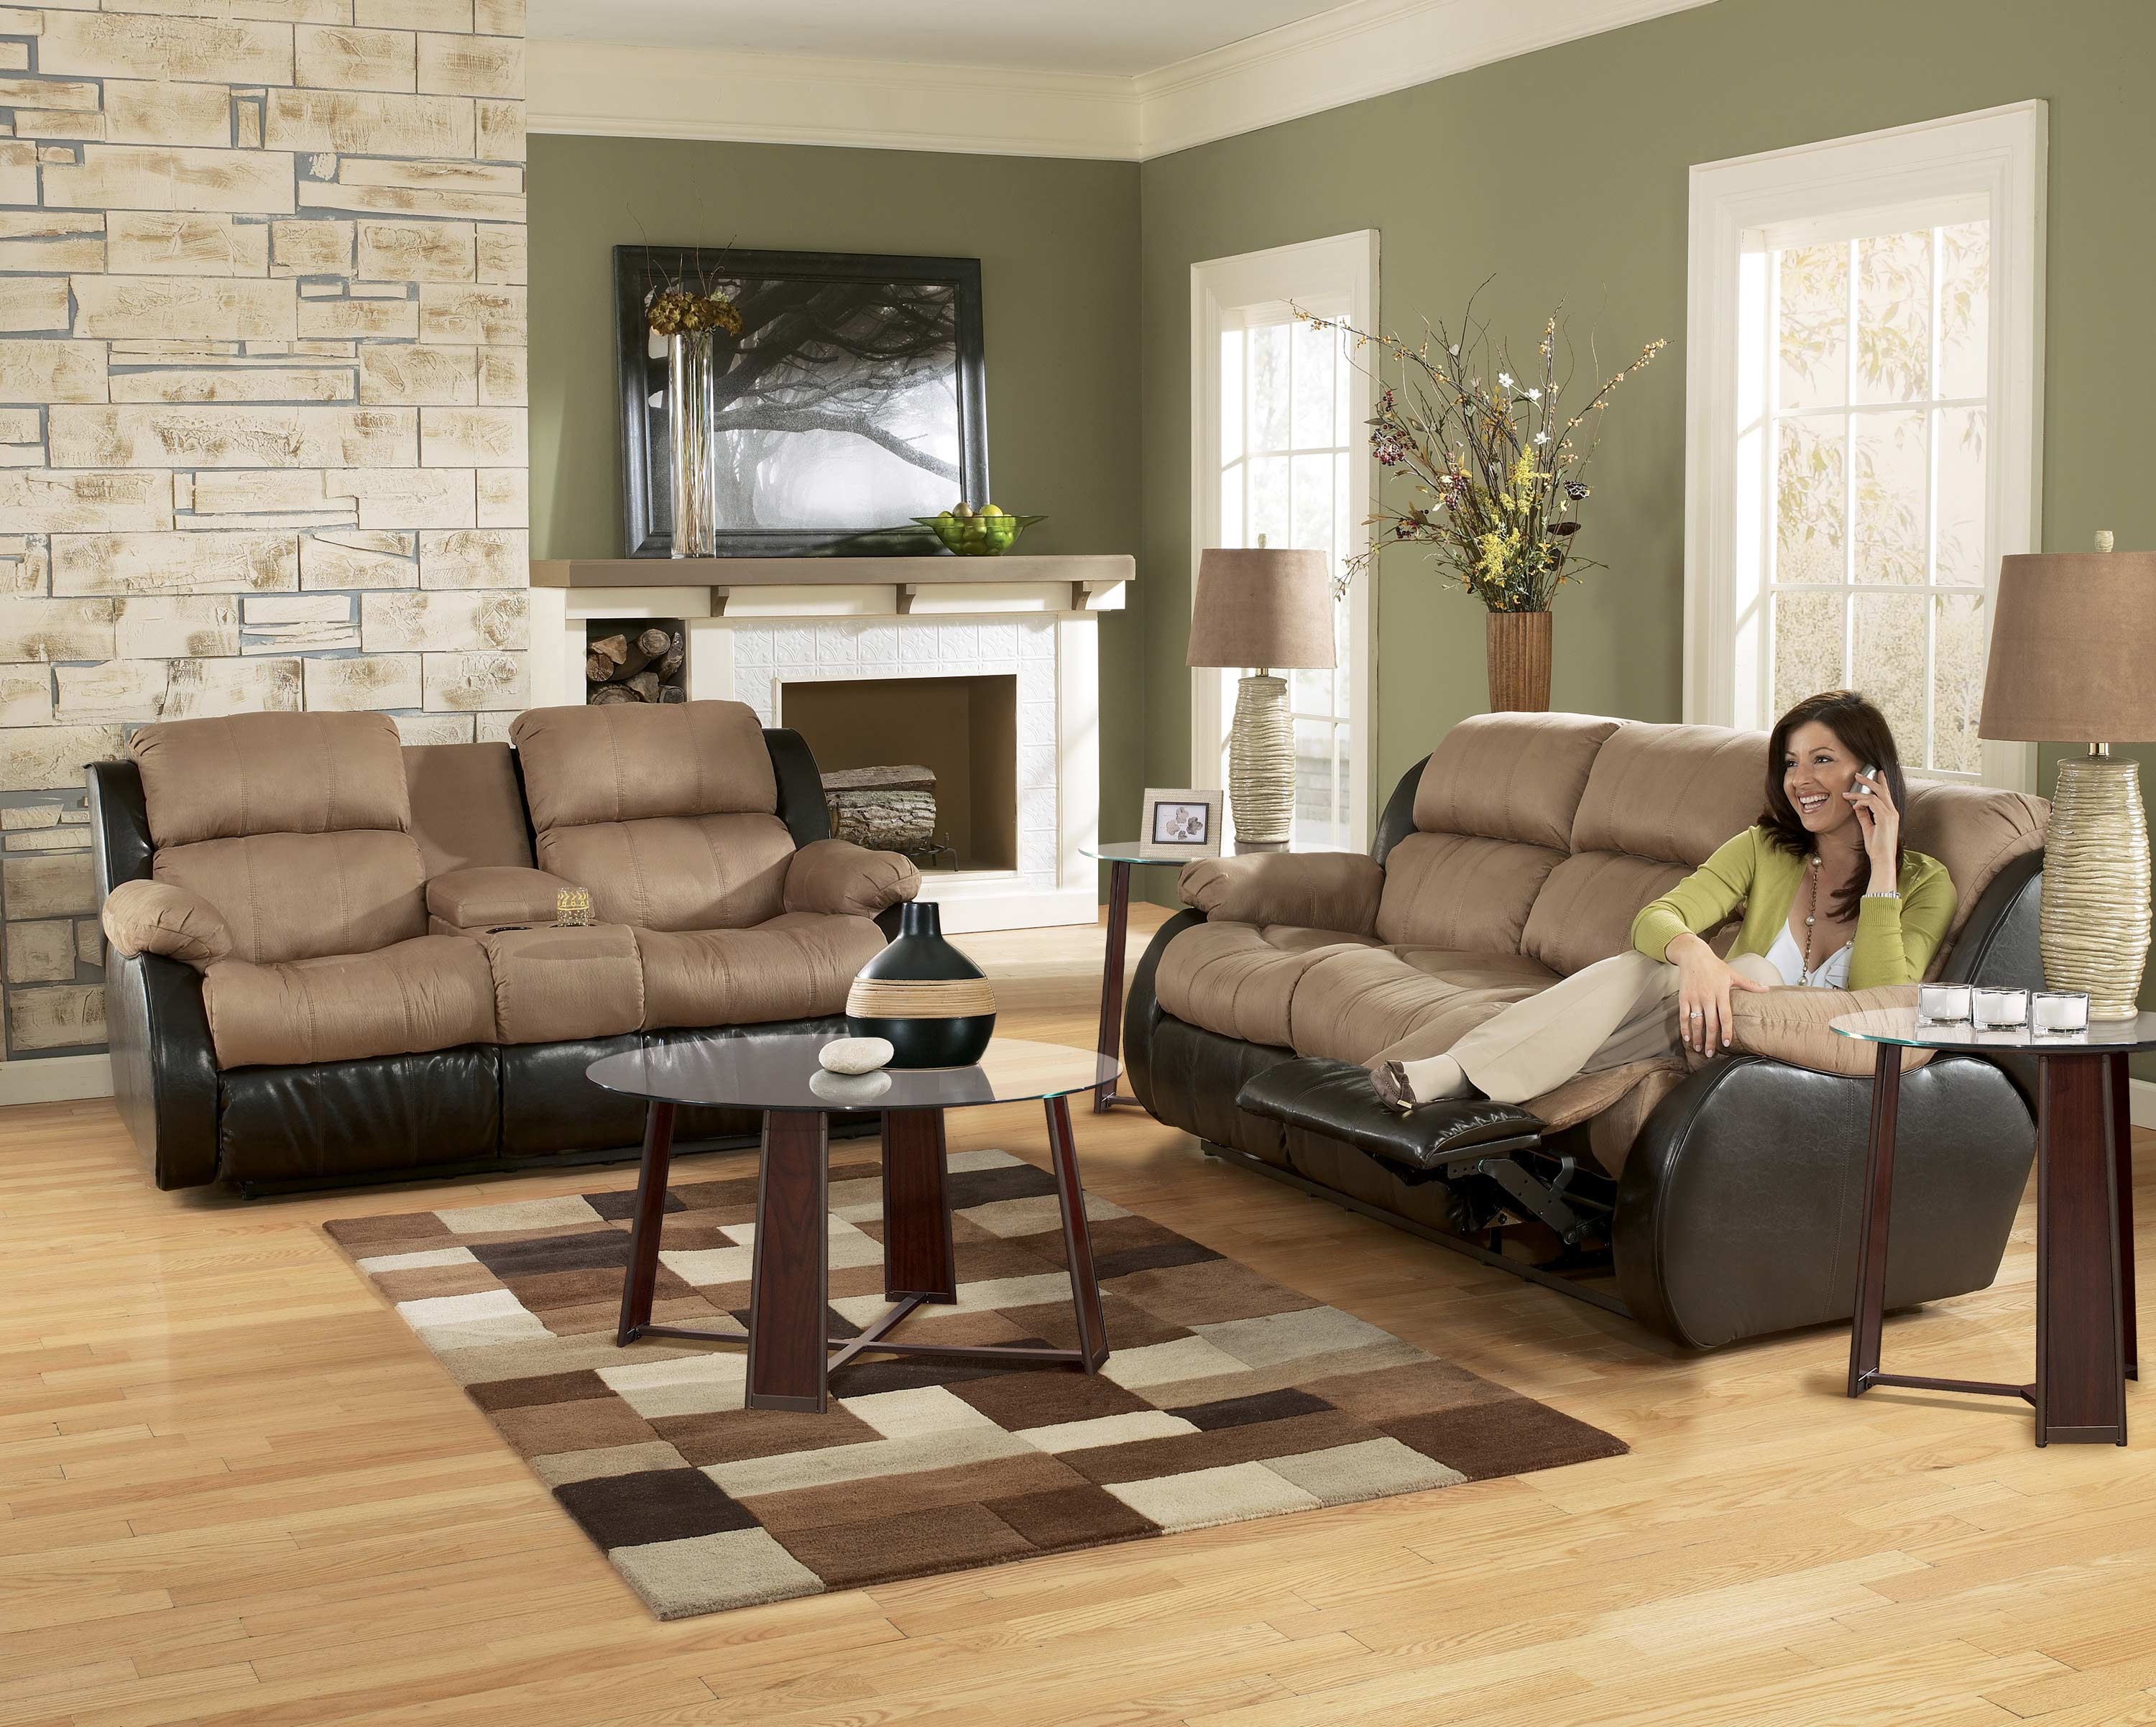 rooms to go living room set furnitures roy home design 20801 | rooms to go living room set 04